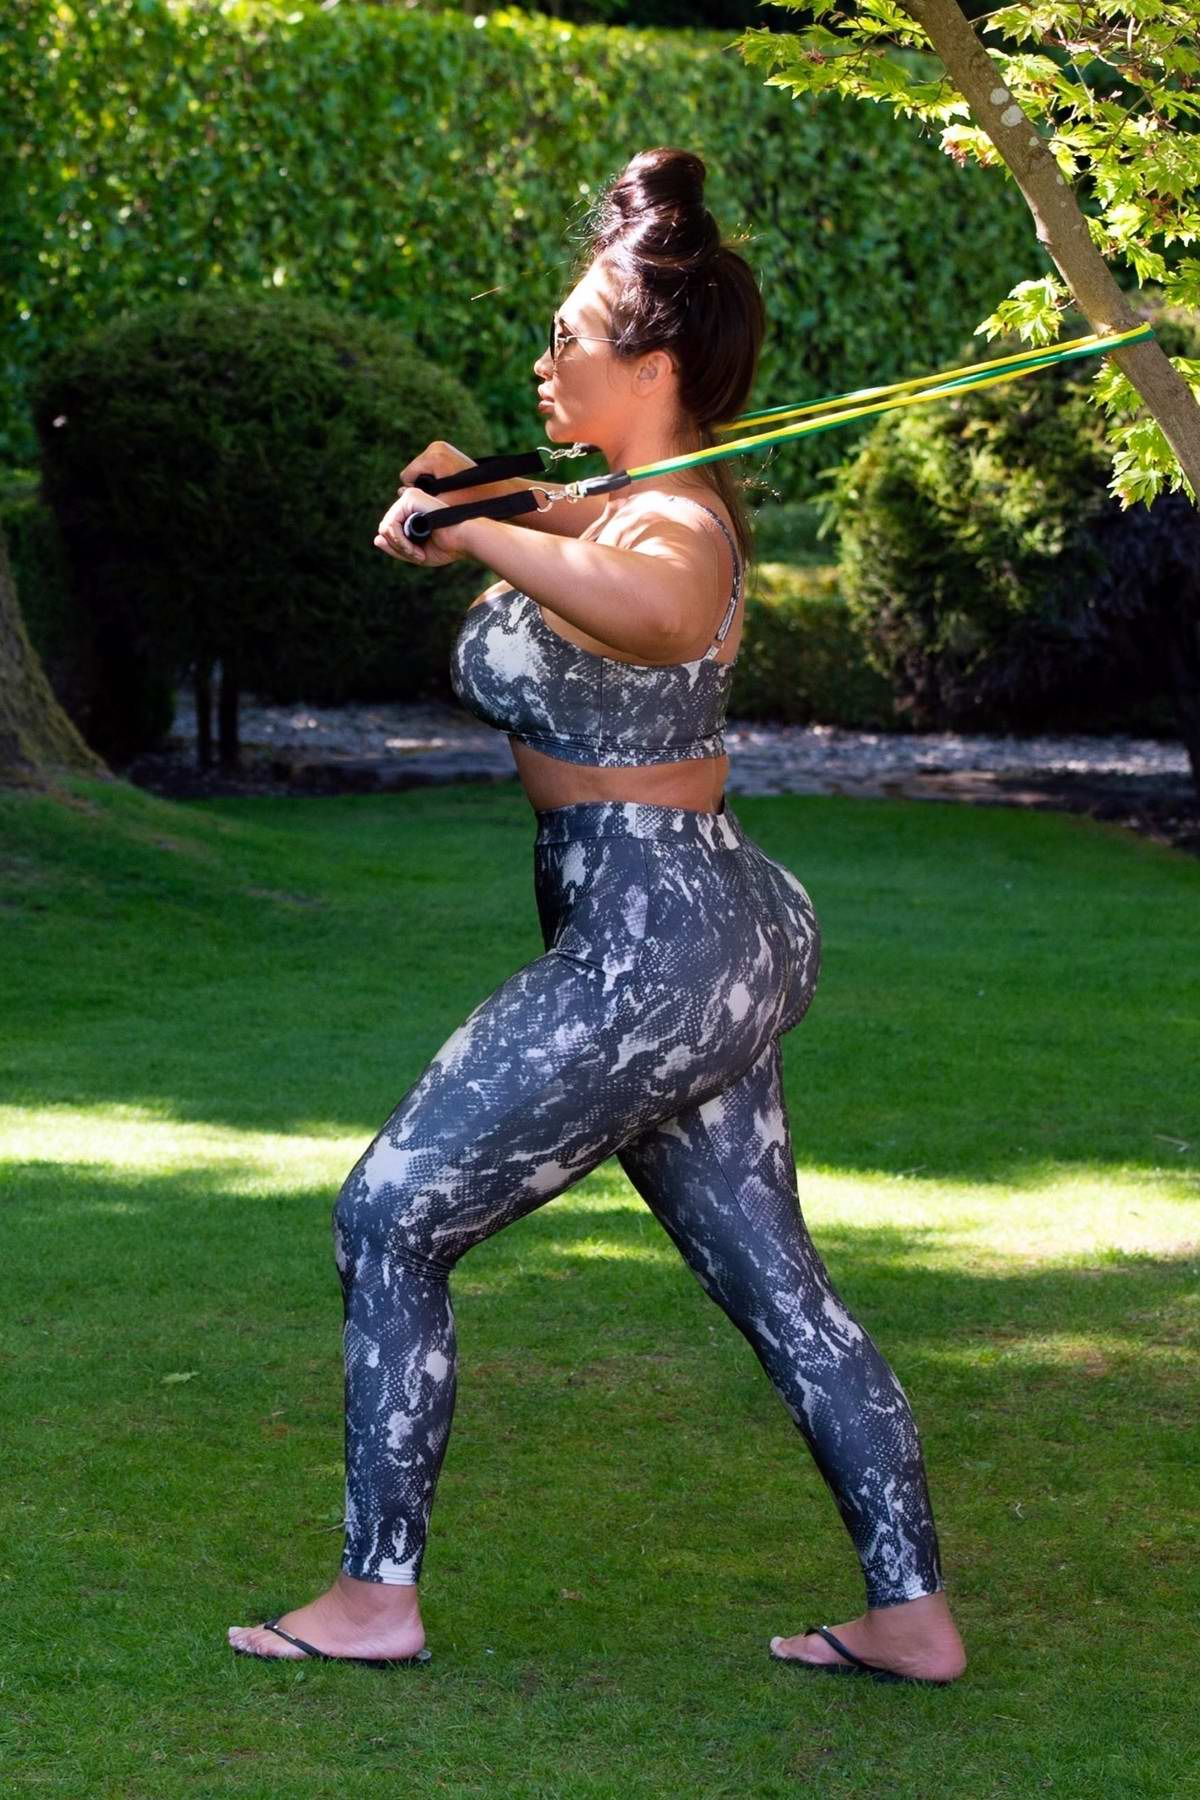 Lauren Goodger sports snakeskin print crop top and leggings during an early morning workout at a local park in Essex, UK